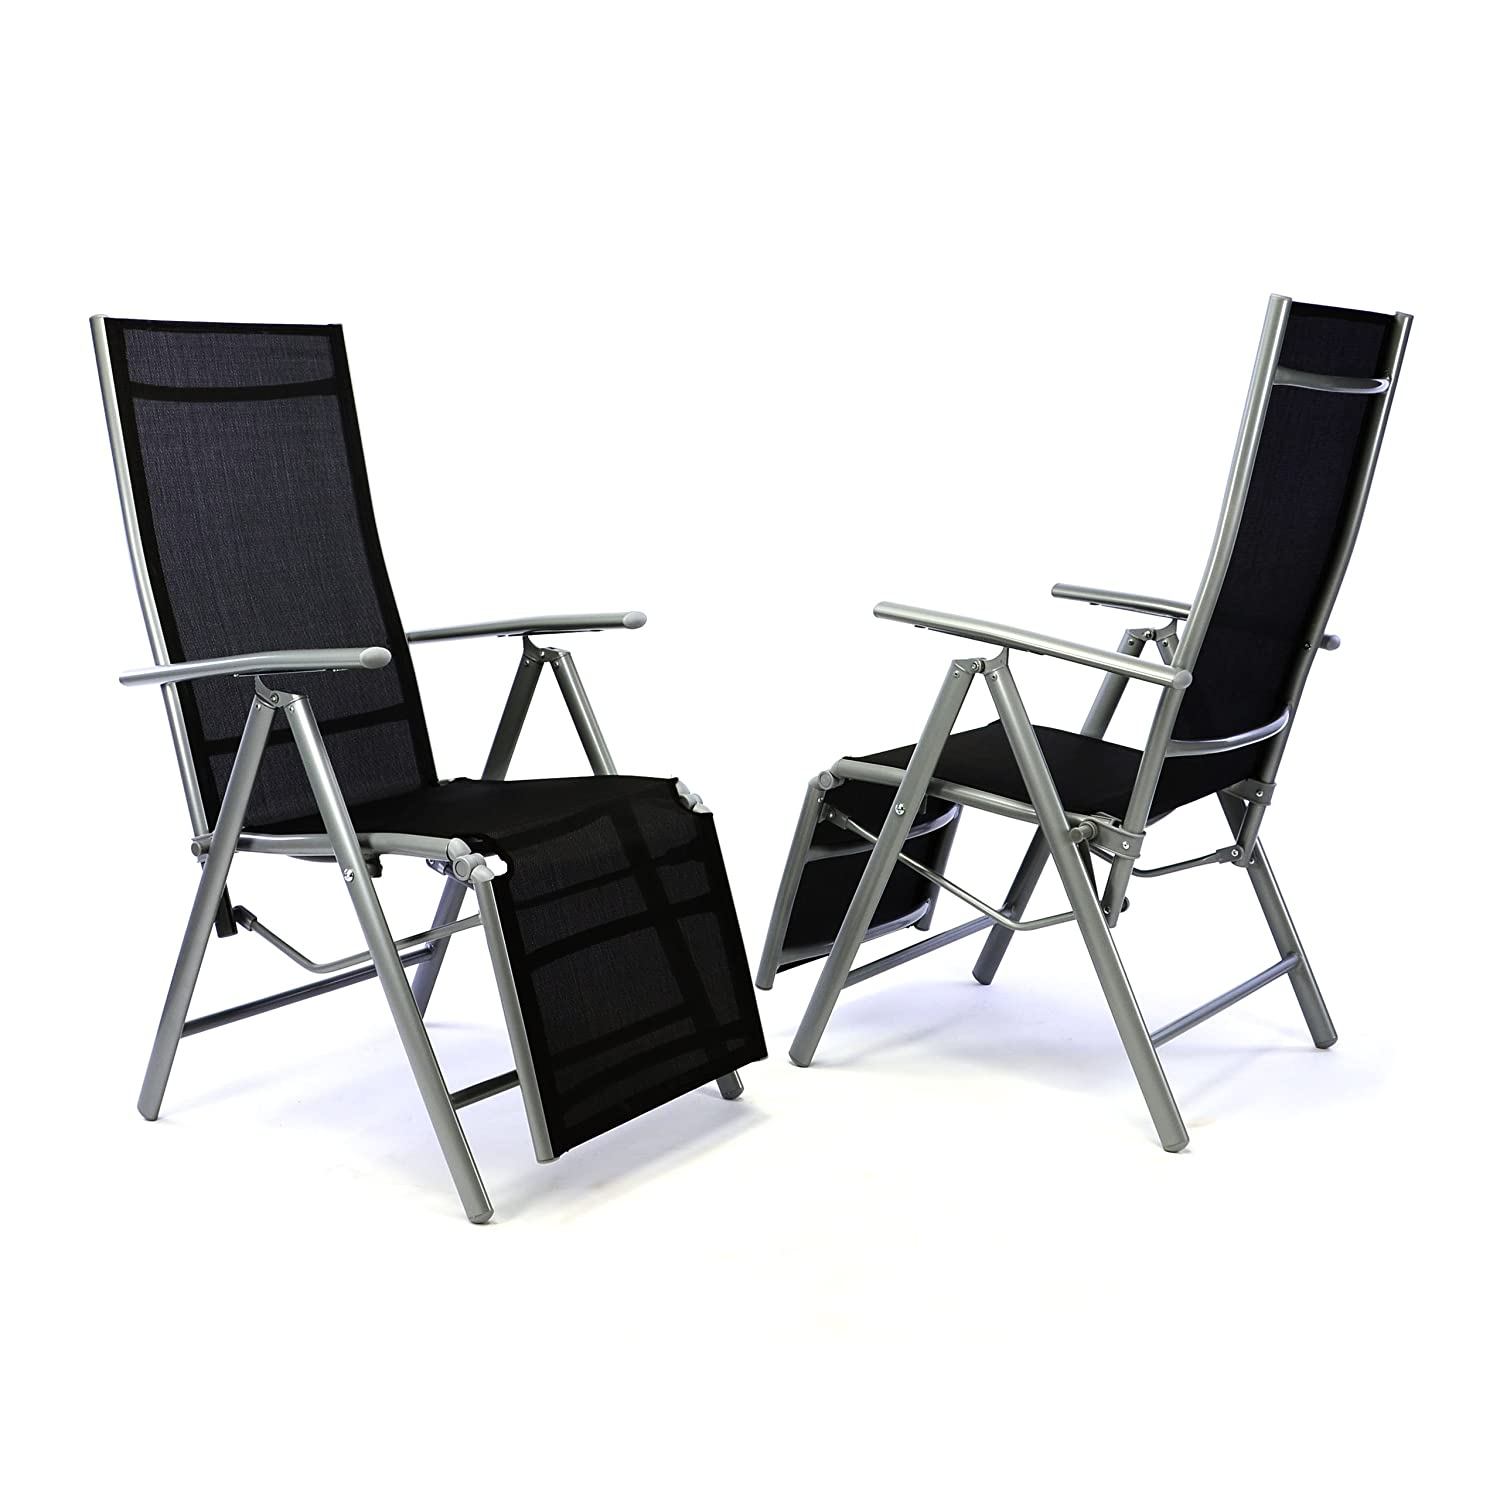 2er set alu liegestuhl klappstuhl mit fu st tze hochlehner sonnenliege terrasse online kaufen. Black Bedroom Furniture Sets. Home Design Ideas